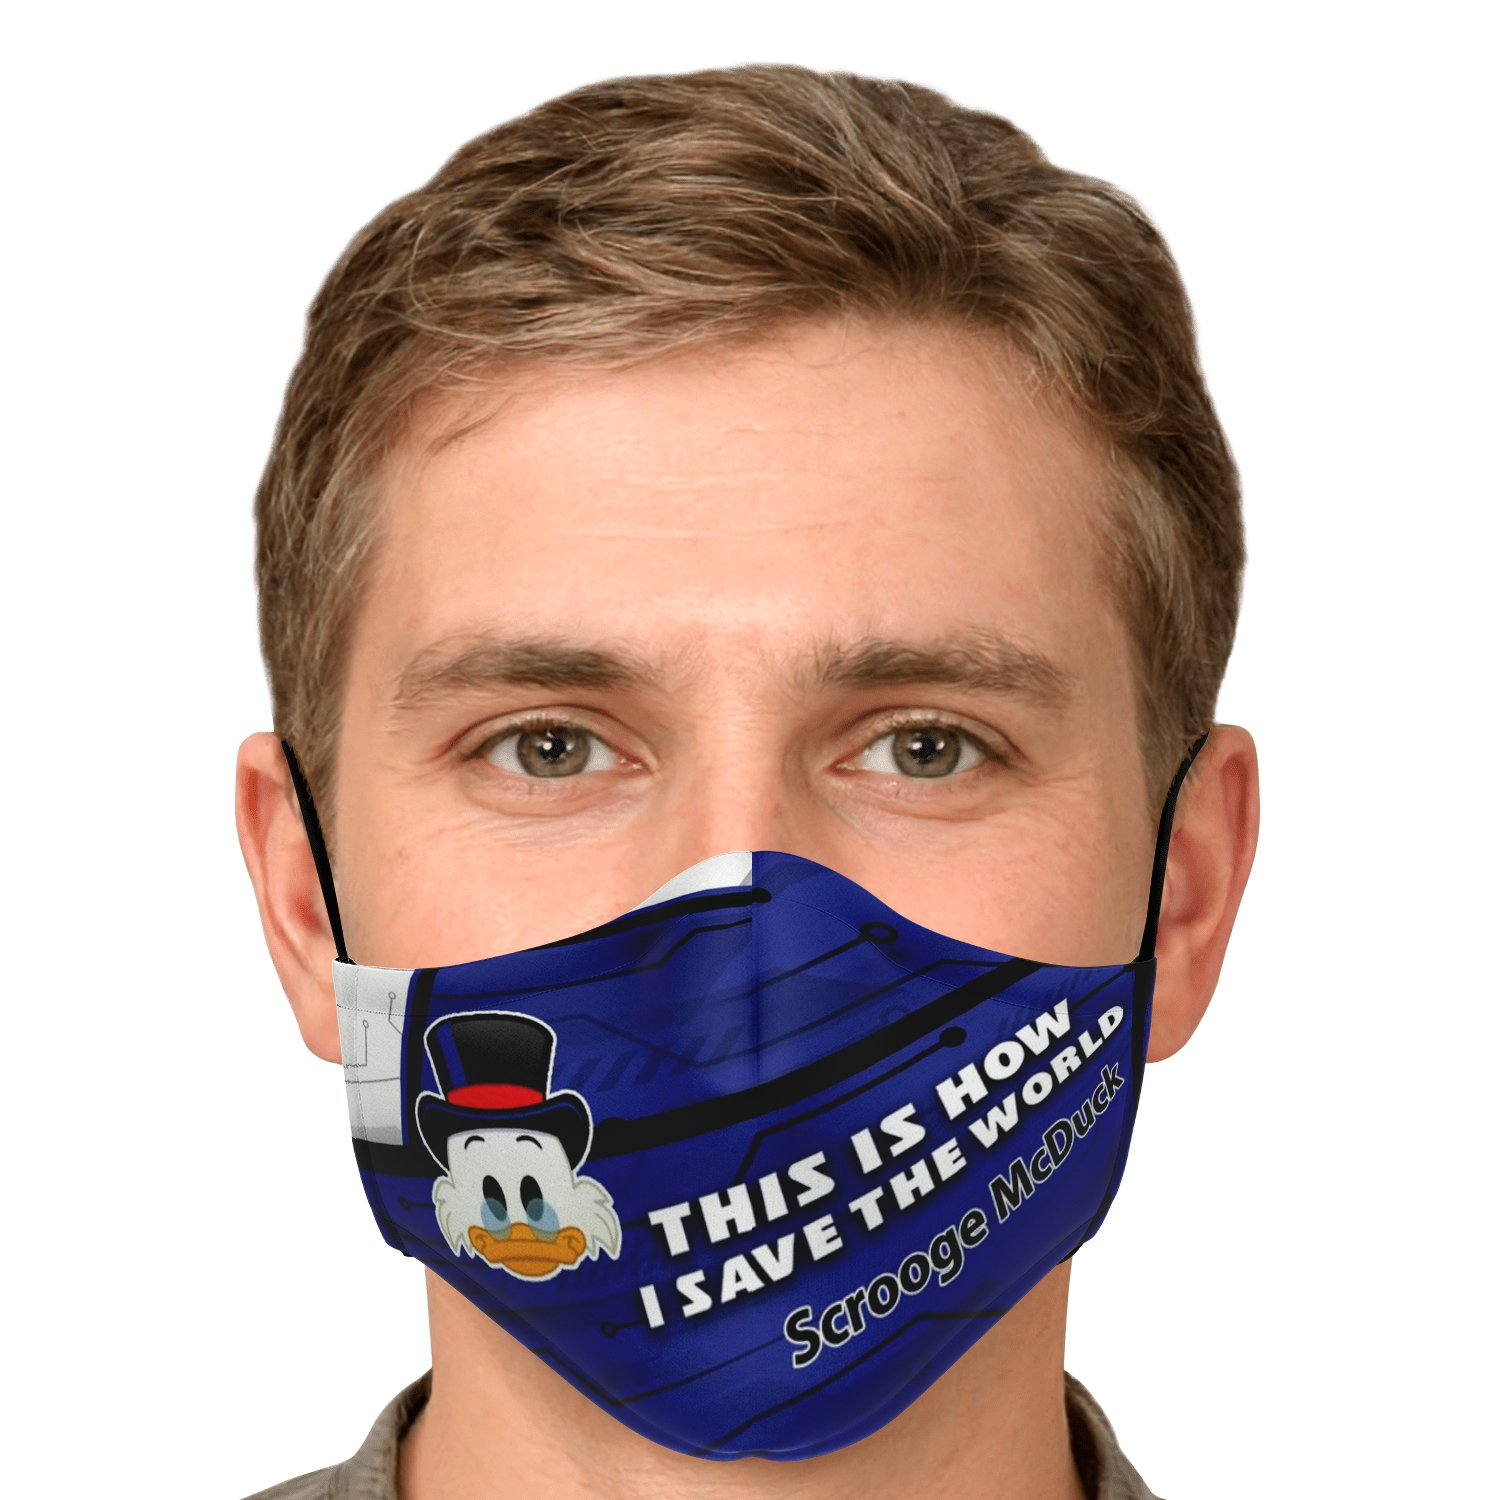 This Is How I Save The World Scrooge McDuck Disney Face Masks 4